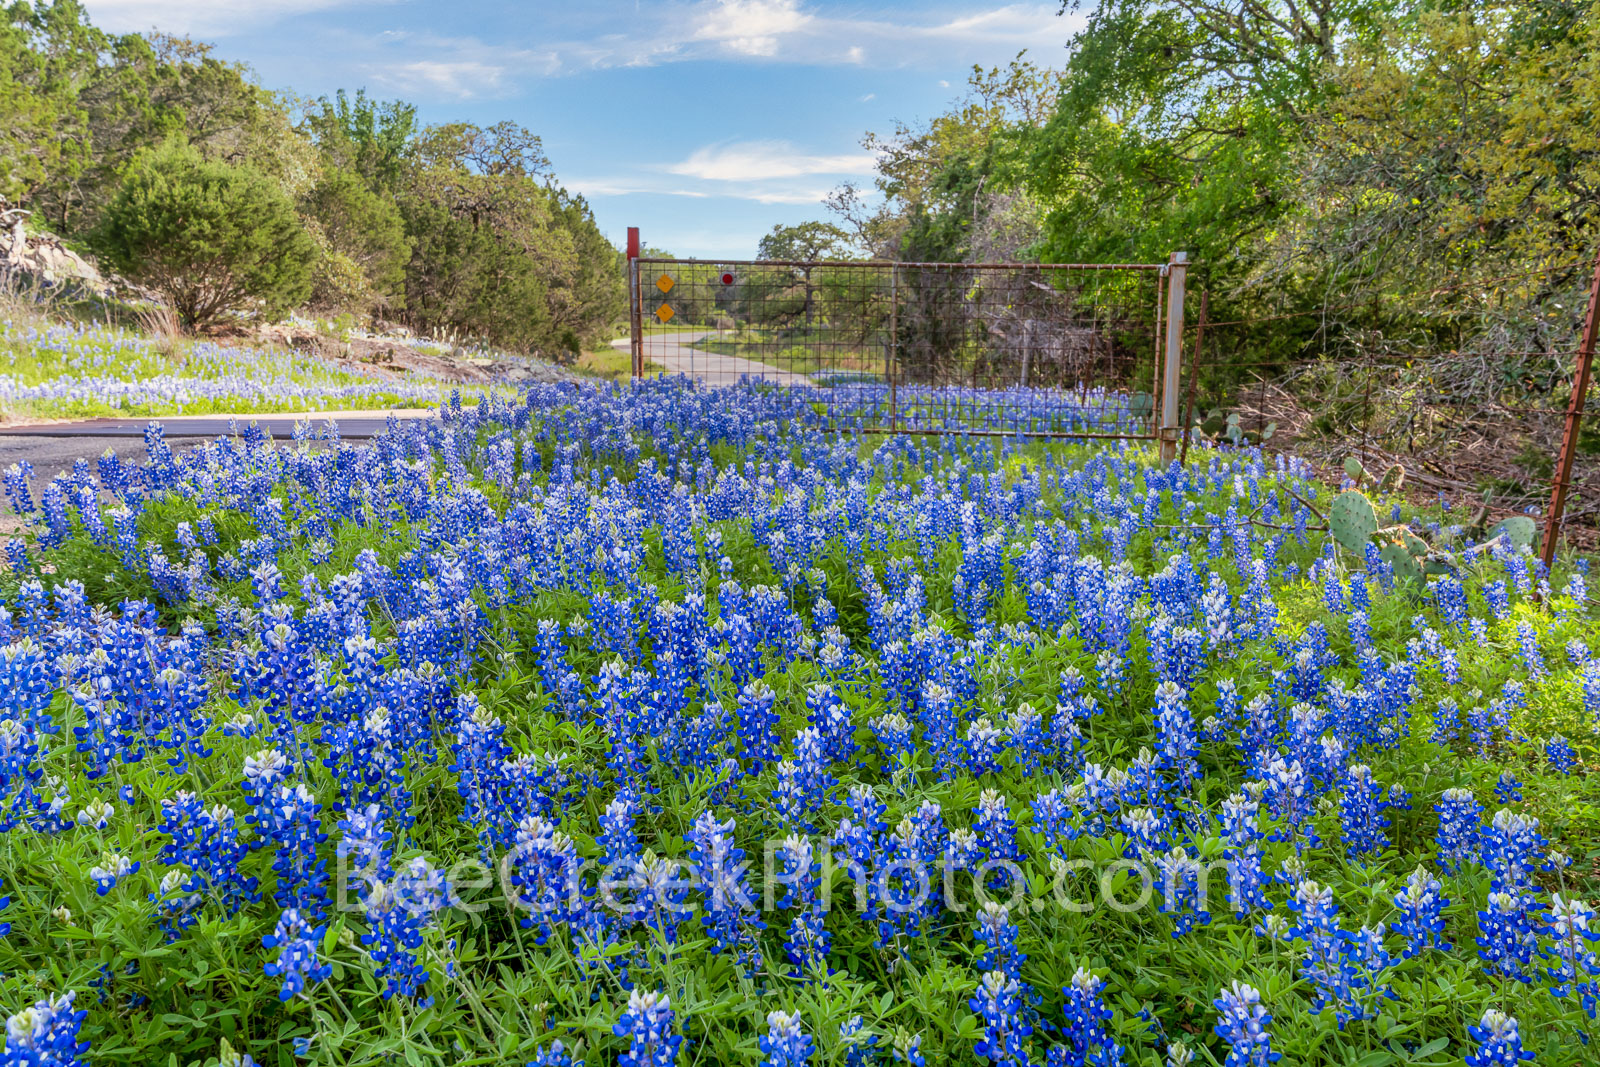 texas bluebonnets, bluebonnets, bluebonnet, texas hill country, hill country, county road, dirt road, texas wildflowers, wildflowers, gate, cattle guard, roadside, images of texas, images of bluebonne